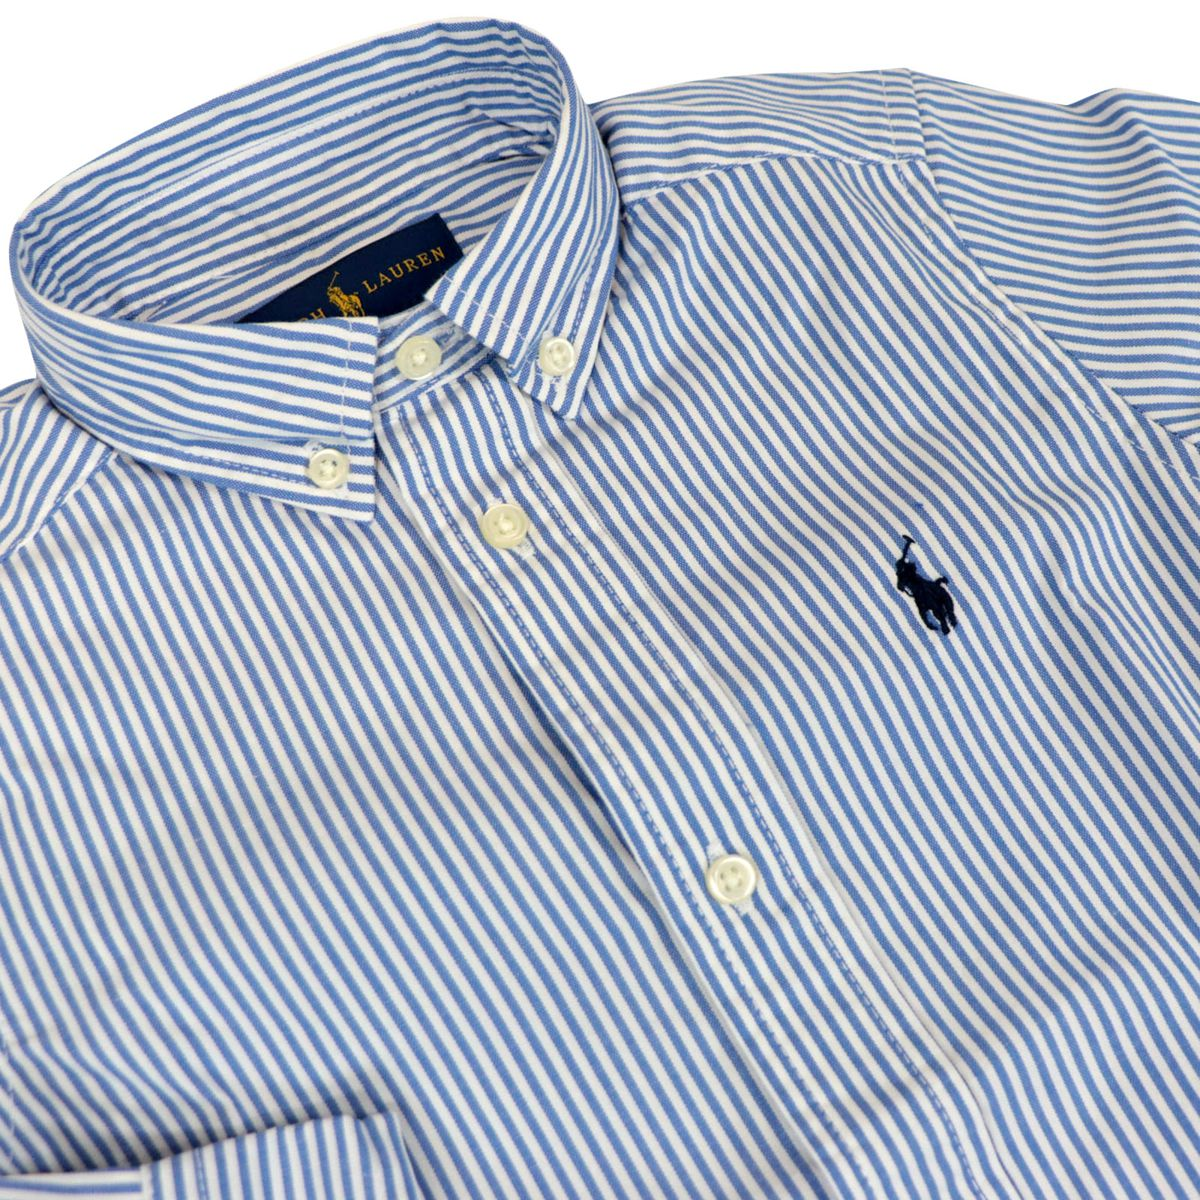 Long-sleeved shirt in custom fit cotton with button-down collar Blue / white Polo Ralph Lauren